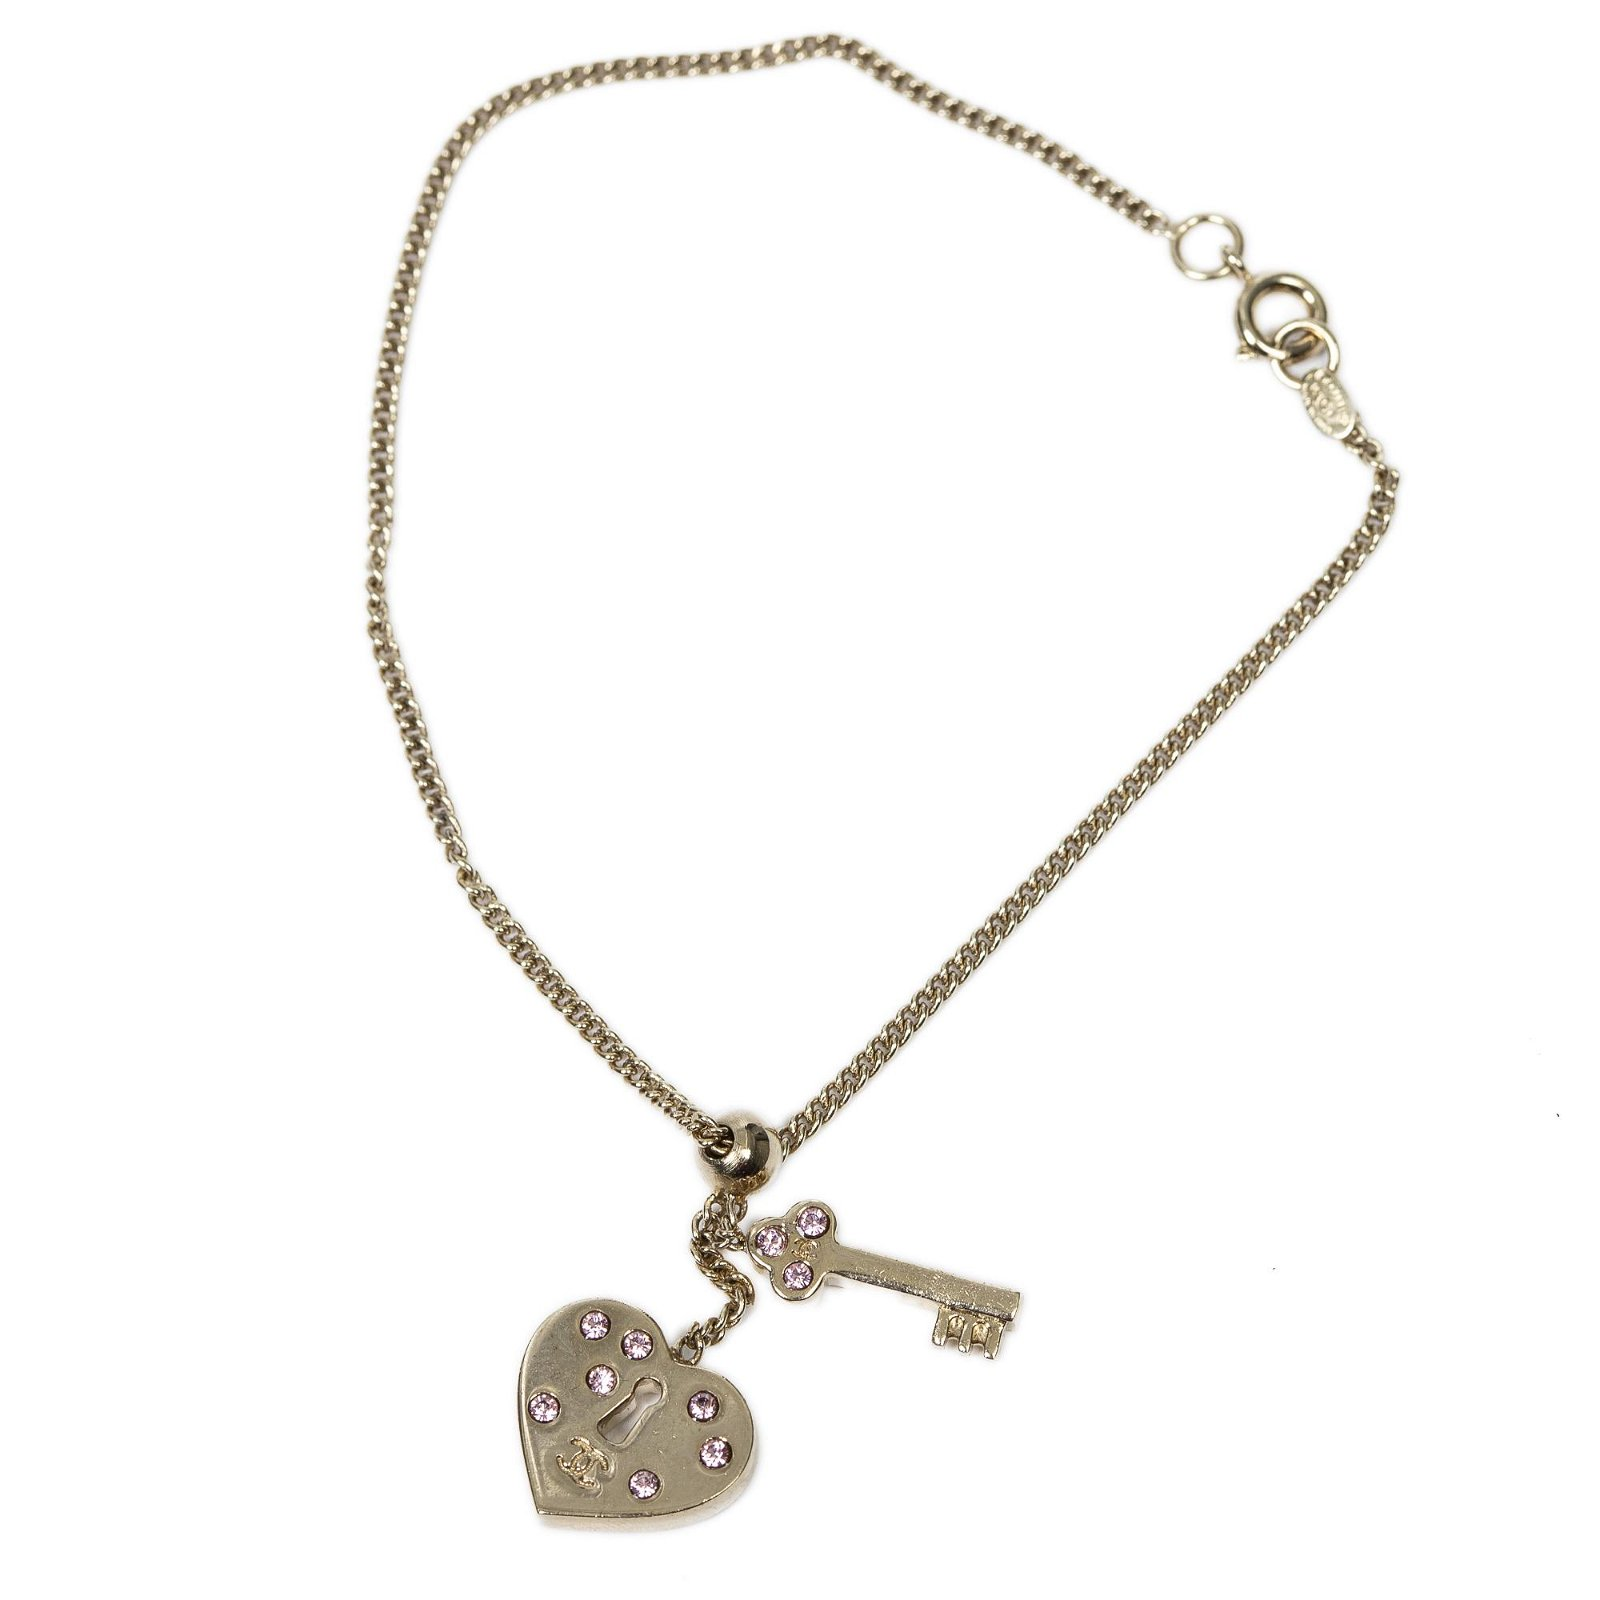 Chanel Stainless Steel without Nickel Heart Key Pendant